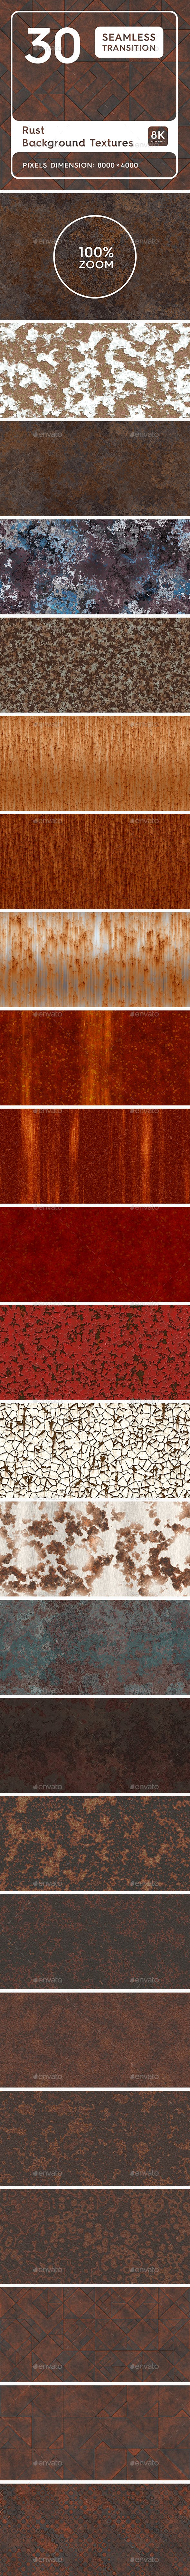 30 Rust Background Textures. Seamless Transition. - 3DOcean Item for Sale